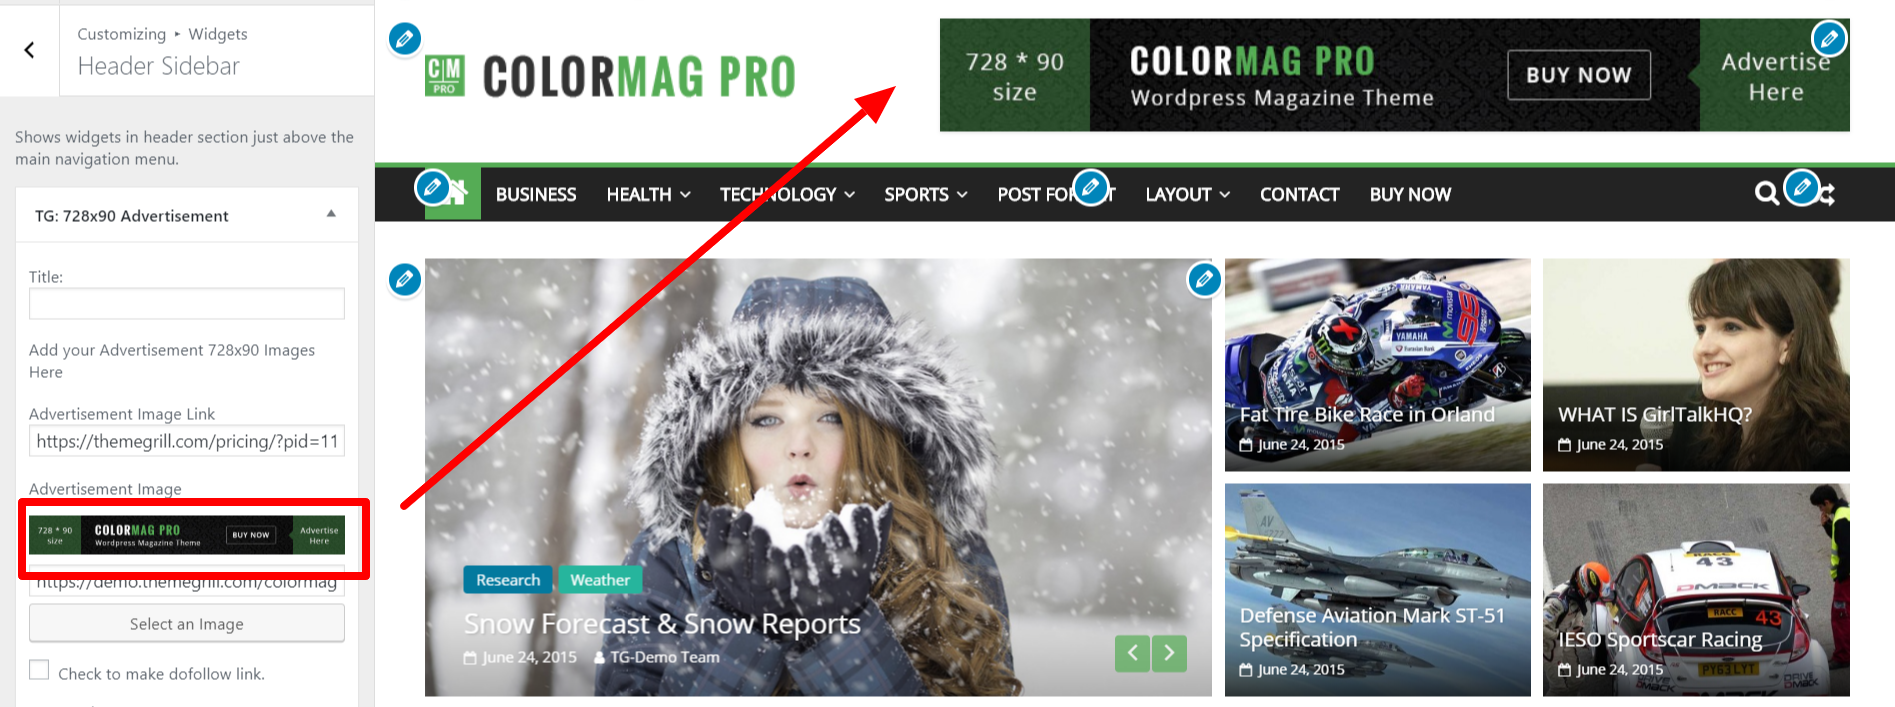 colormag-instruction-header-sidebar